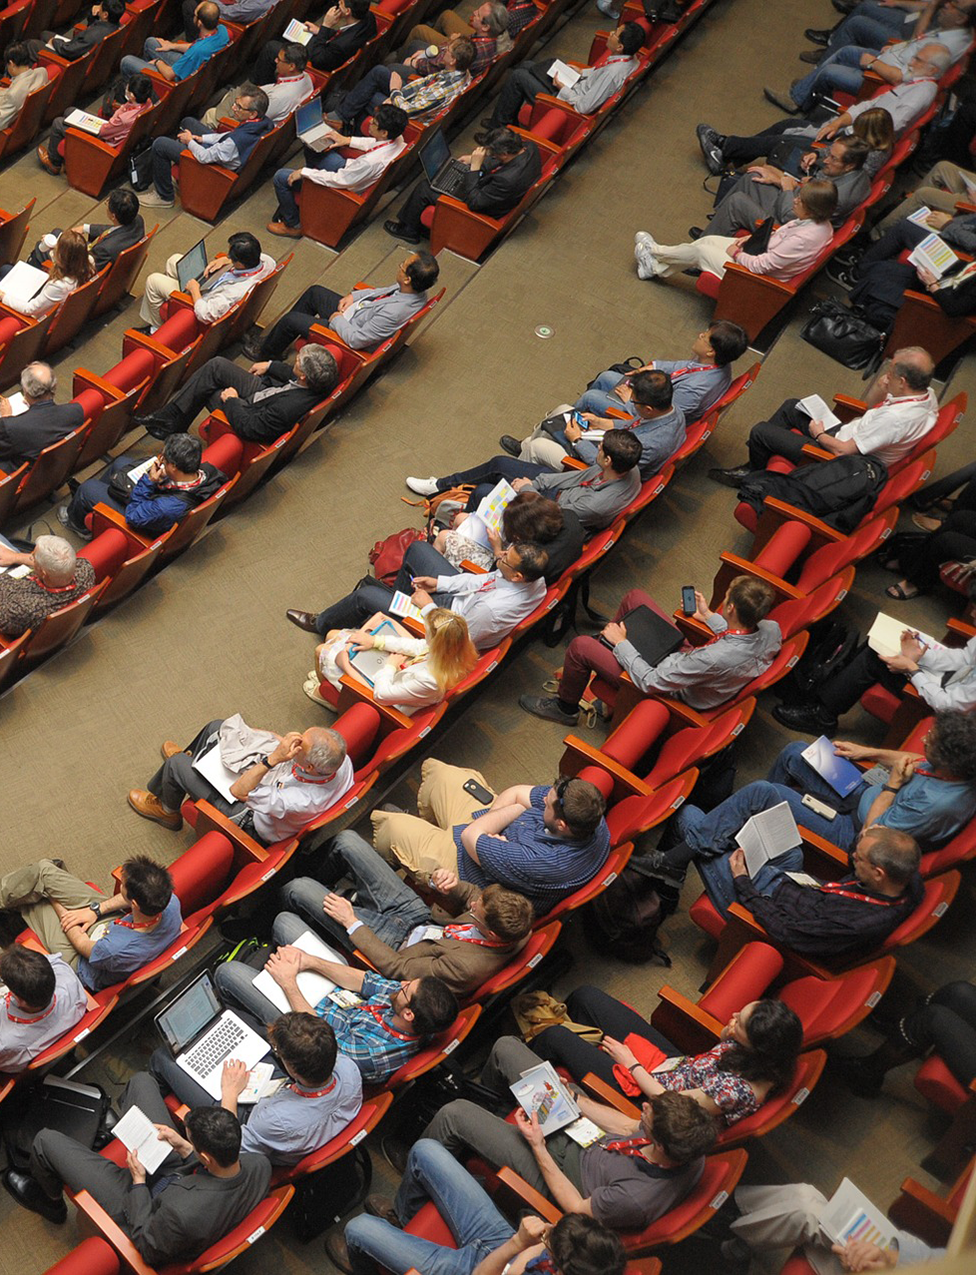 seminar, lecture, audience